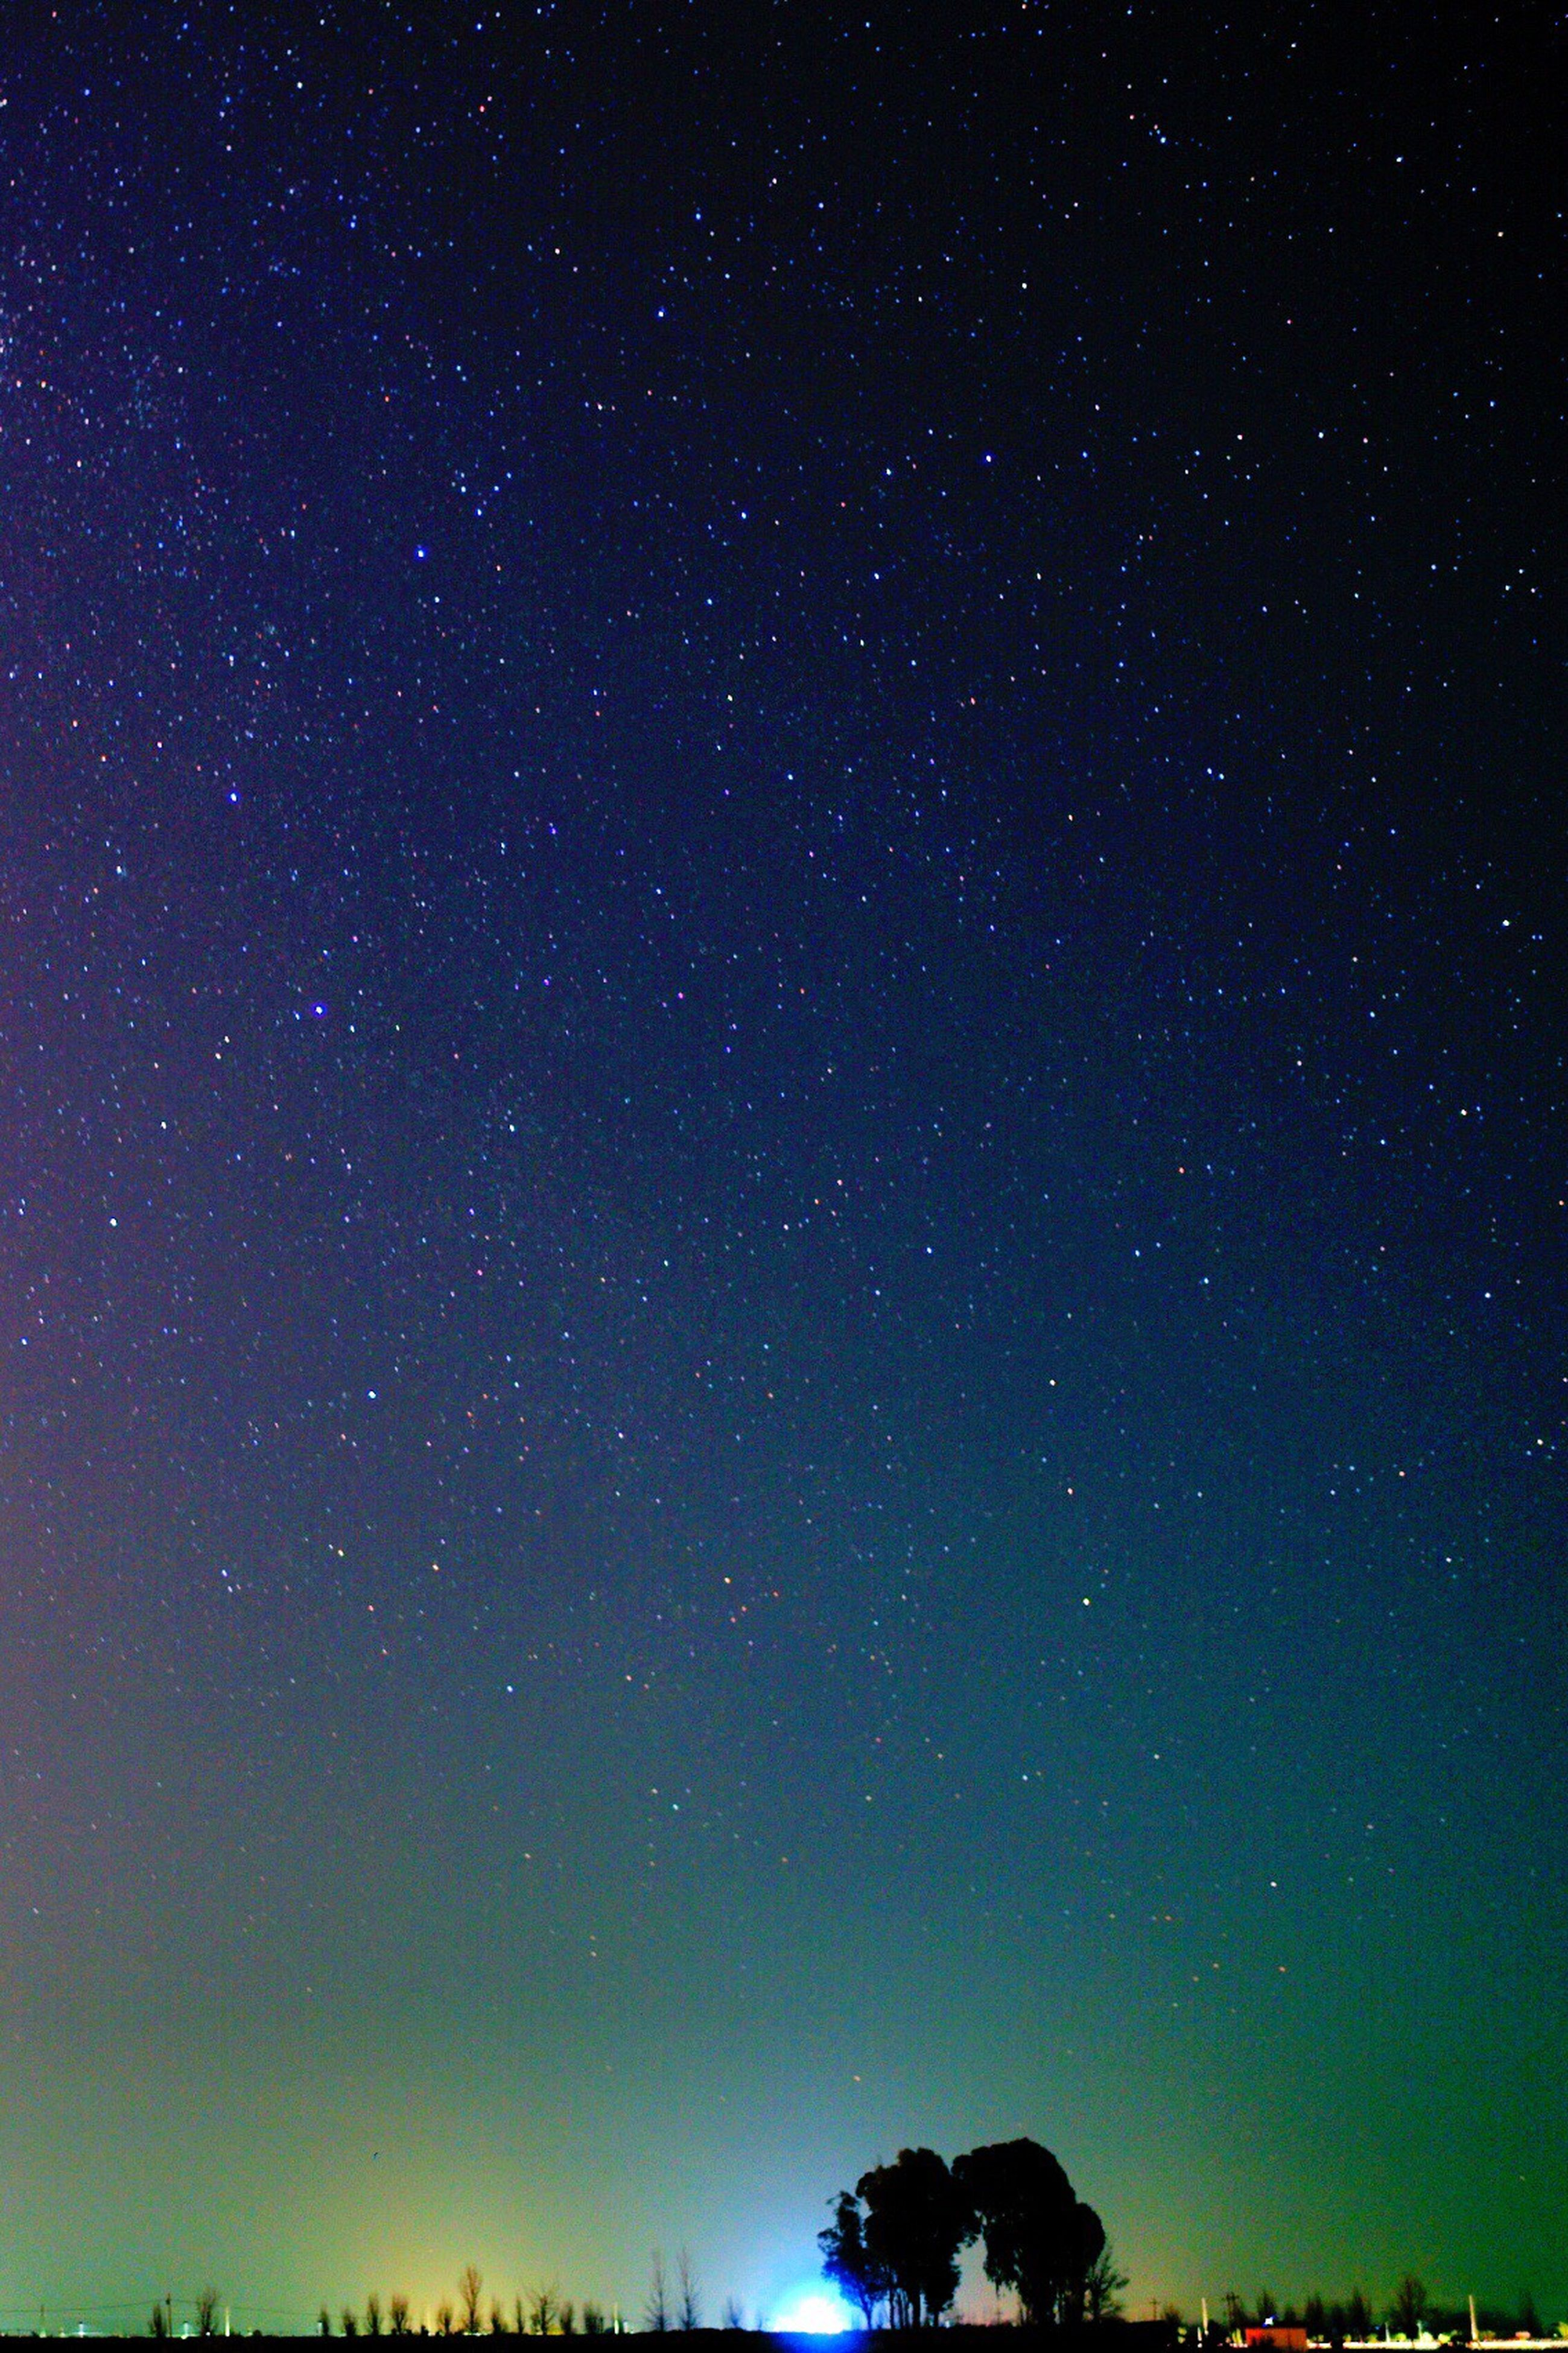 star - space, night, astronomy, sky, scenics, beauty in nature, galaxy, low angle view, tranquil scene, nature, star field, outdoors, space and astronomy, constellation, space, tranquility, no people, milky way